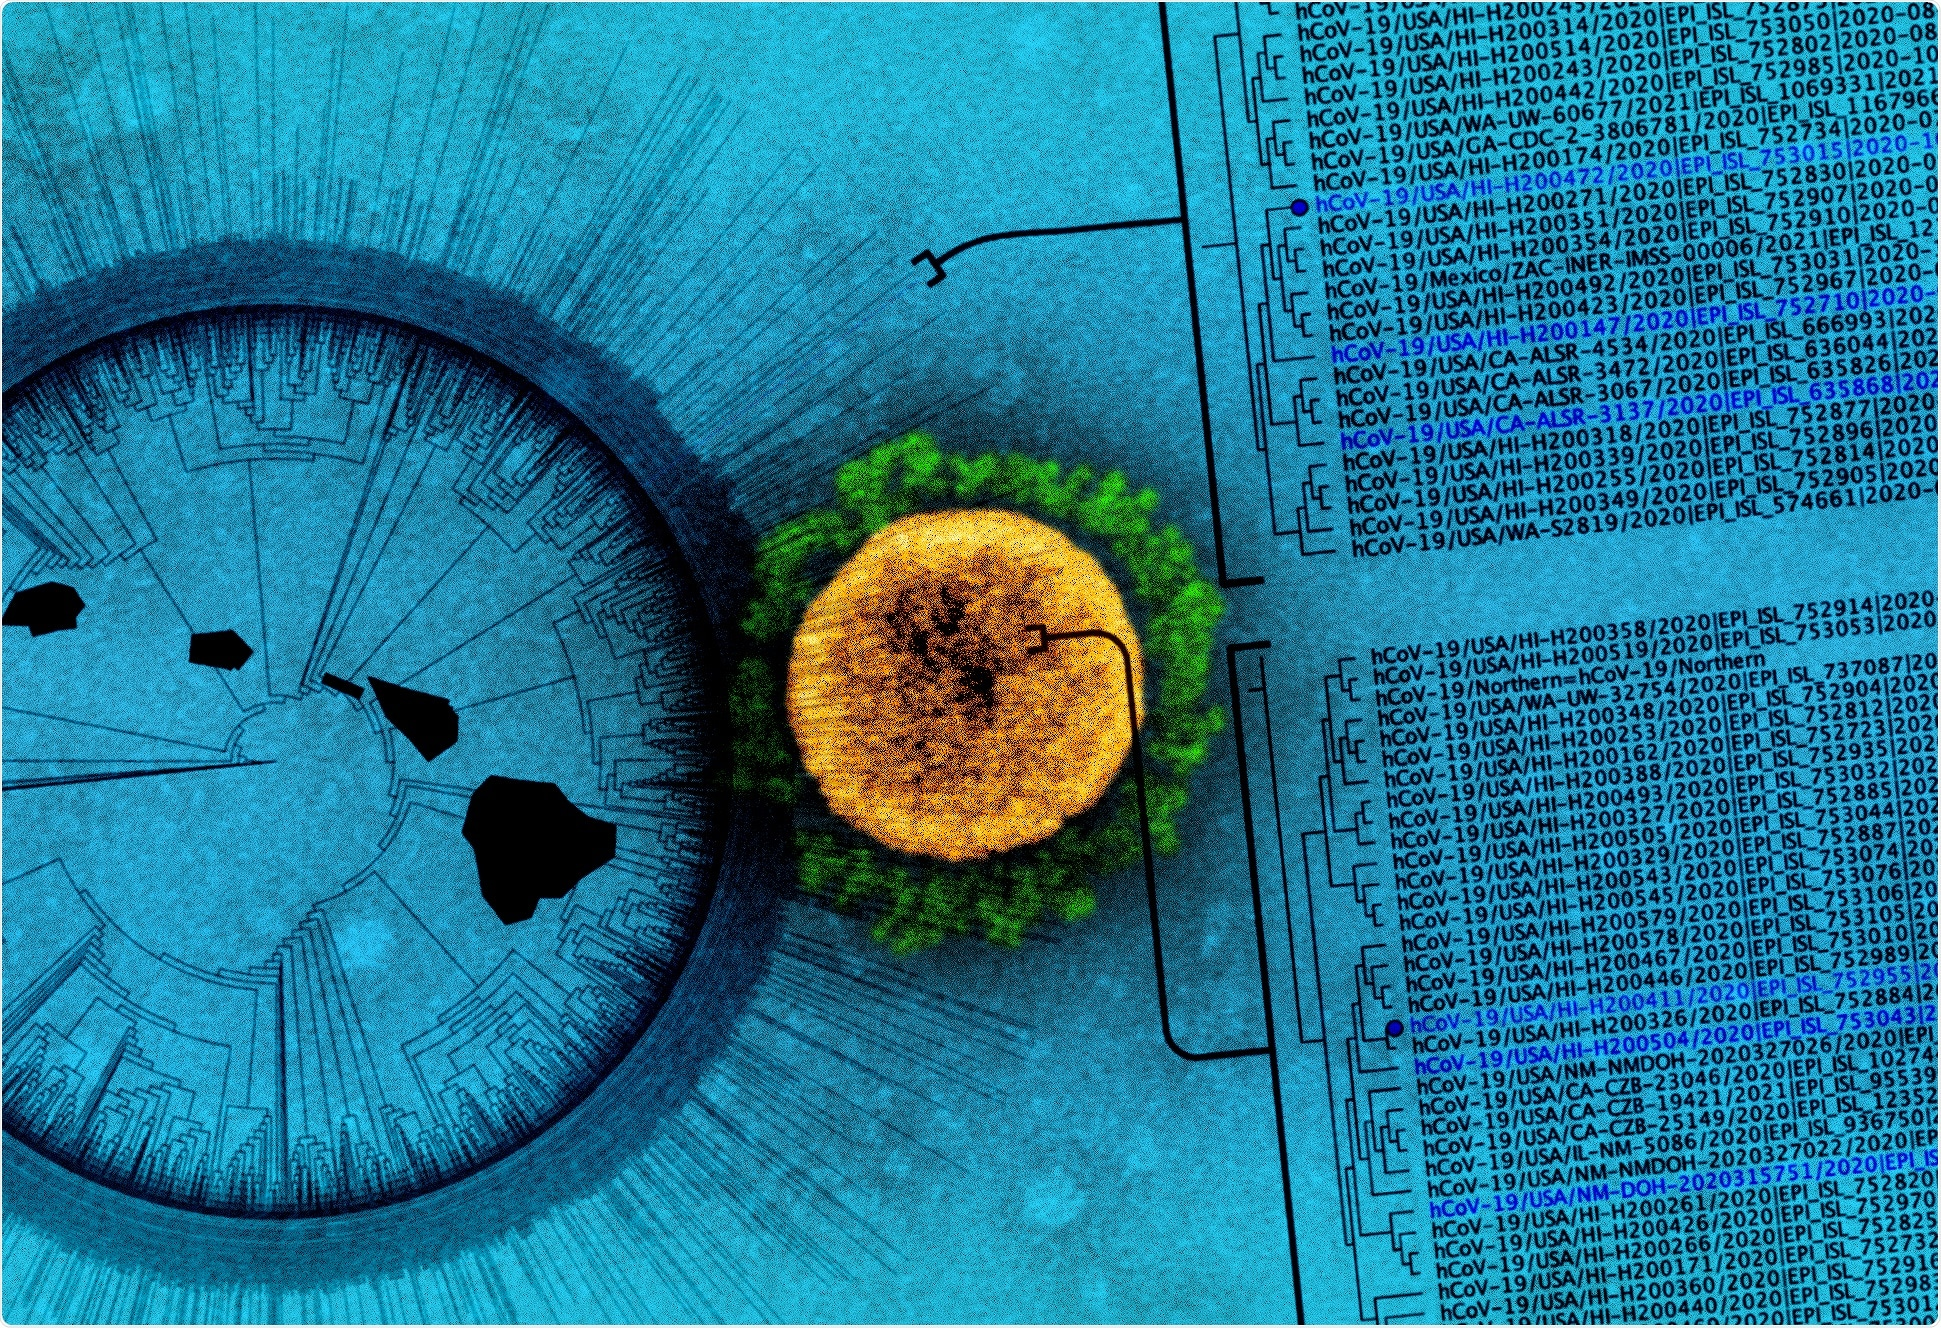 Study: Algorithm for the Quantitation of Variants of Concern for Rationally Designed Vaccines Based on the Isolation of SARS-CoV-2 Hawaiʻi Lineage B.1.243. Image Credit: NIAID